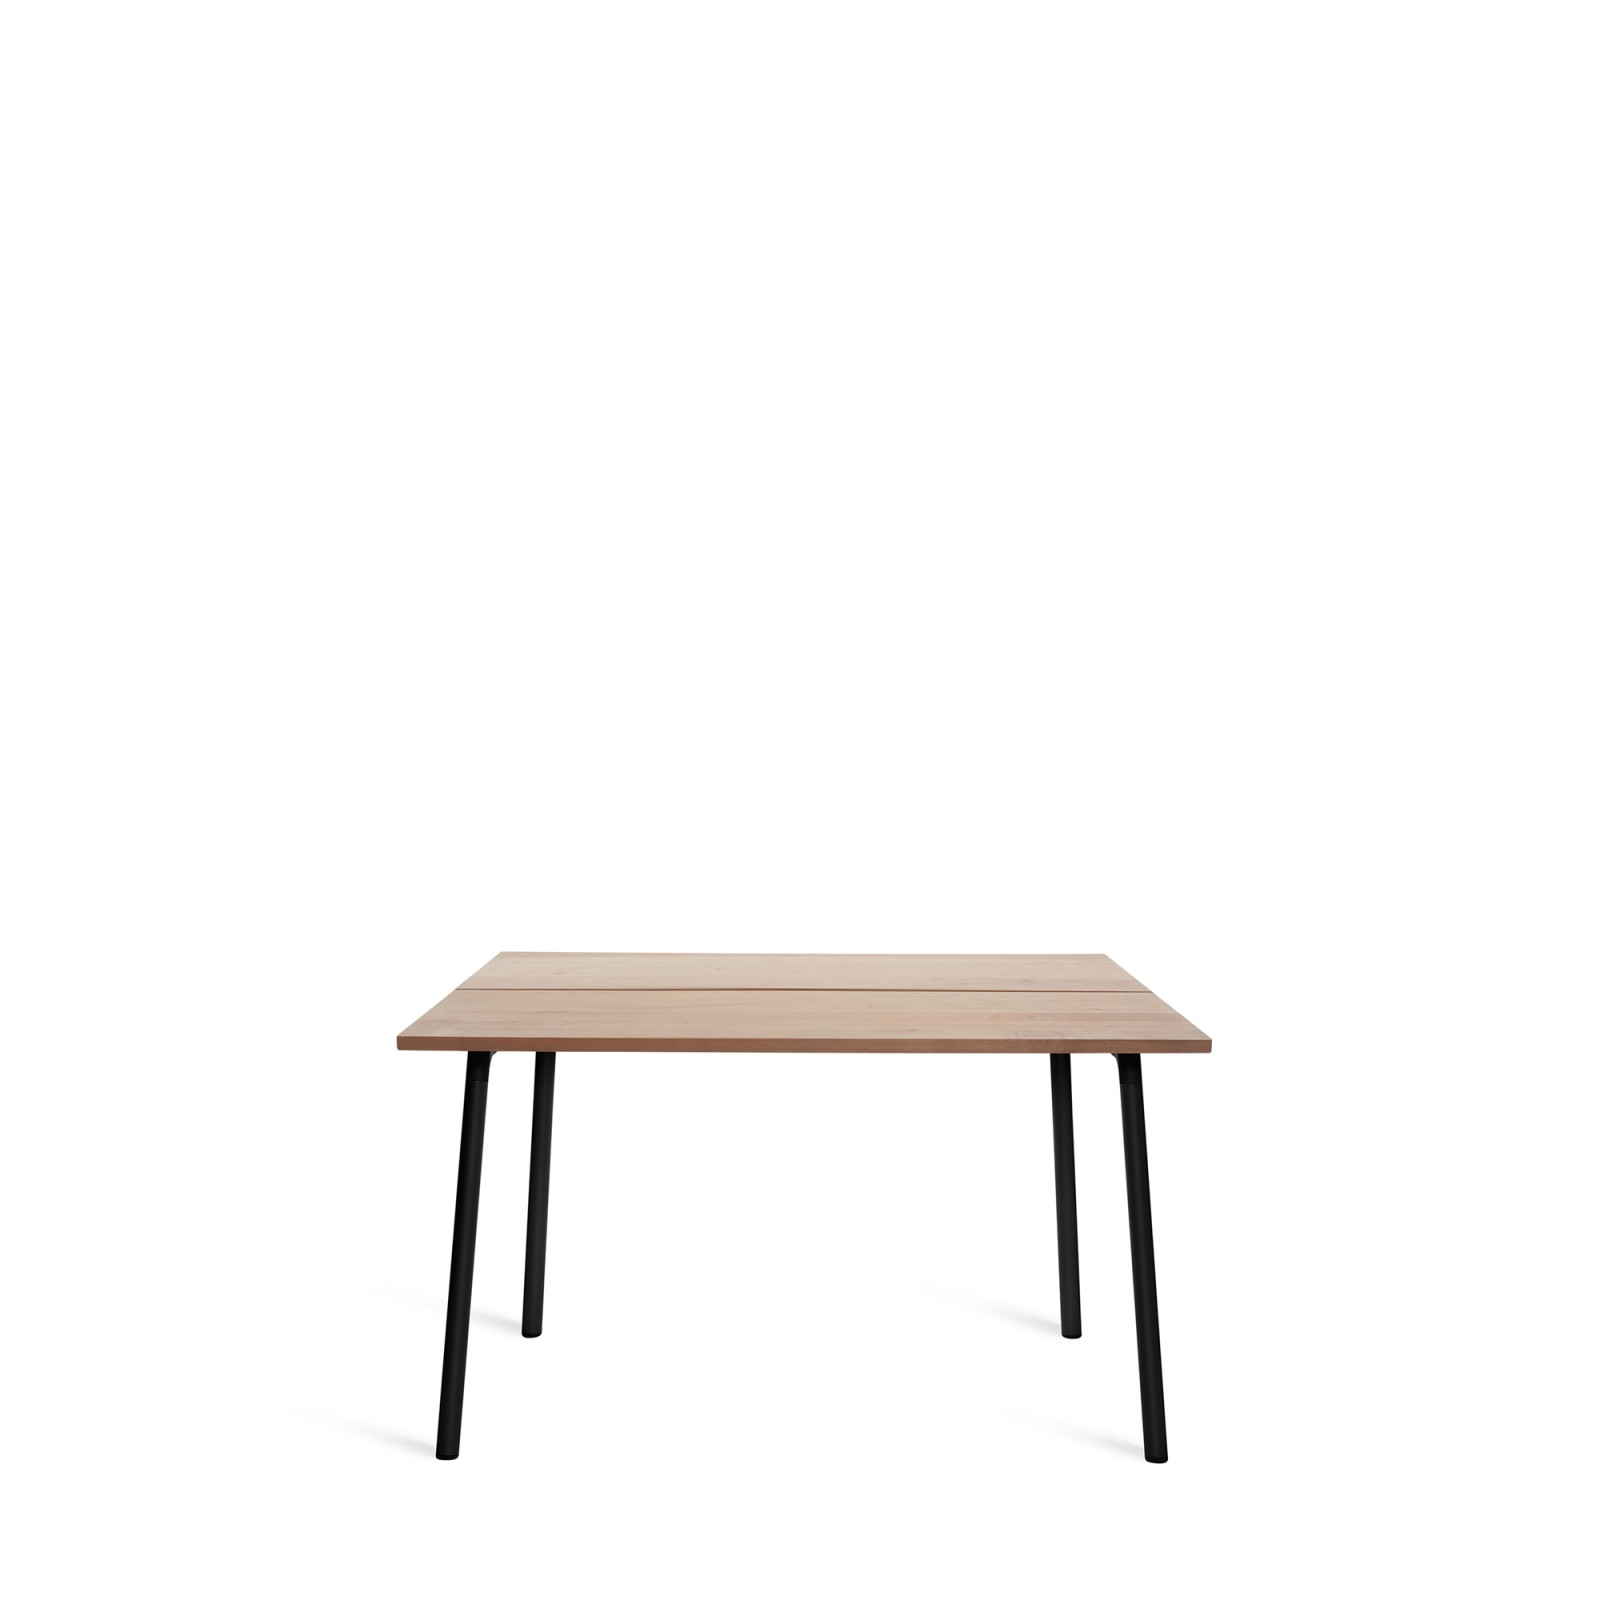 Run Dining Table 122cm, Black, Cedar Top